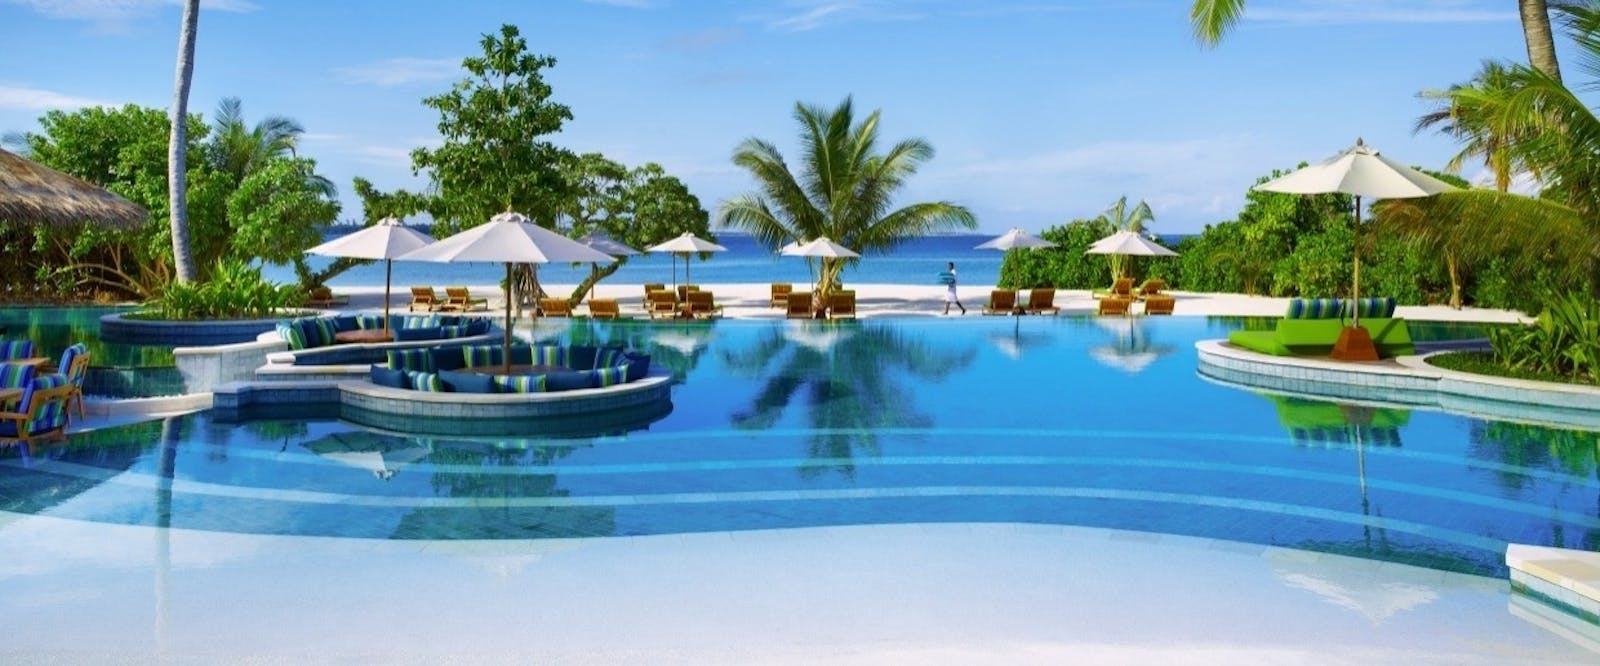 Swimming Pool at Six Senses Laamu, Maldives, Indian Ocean